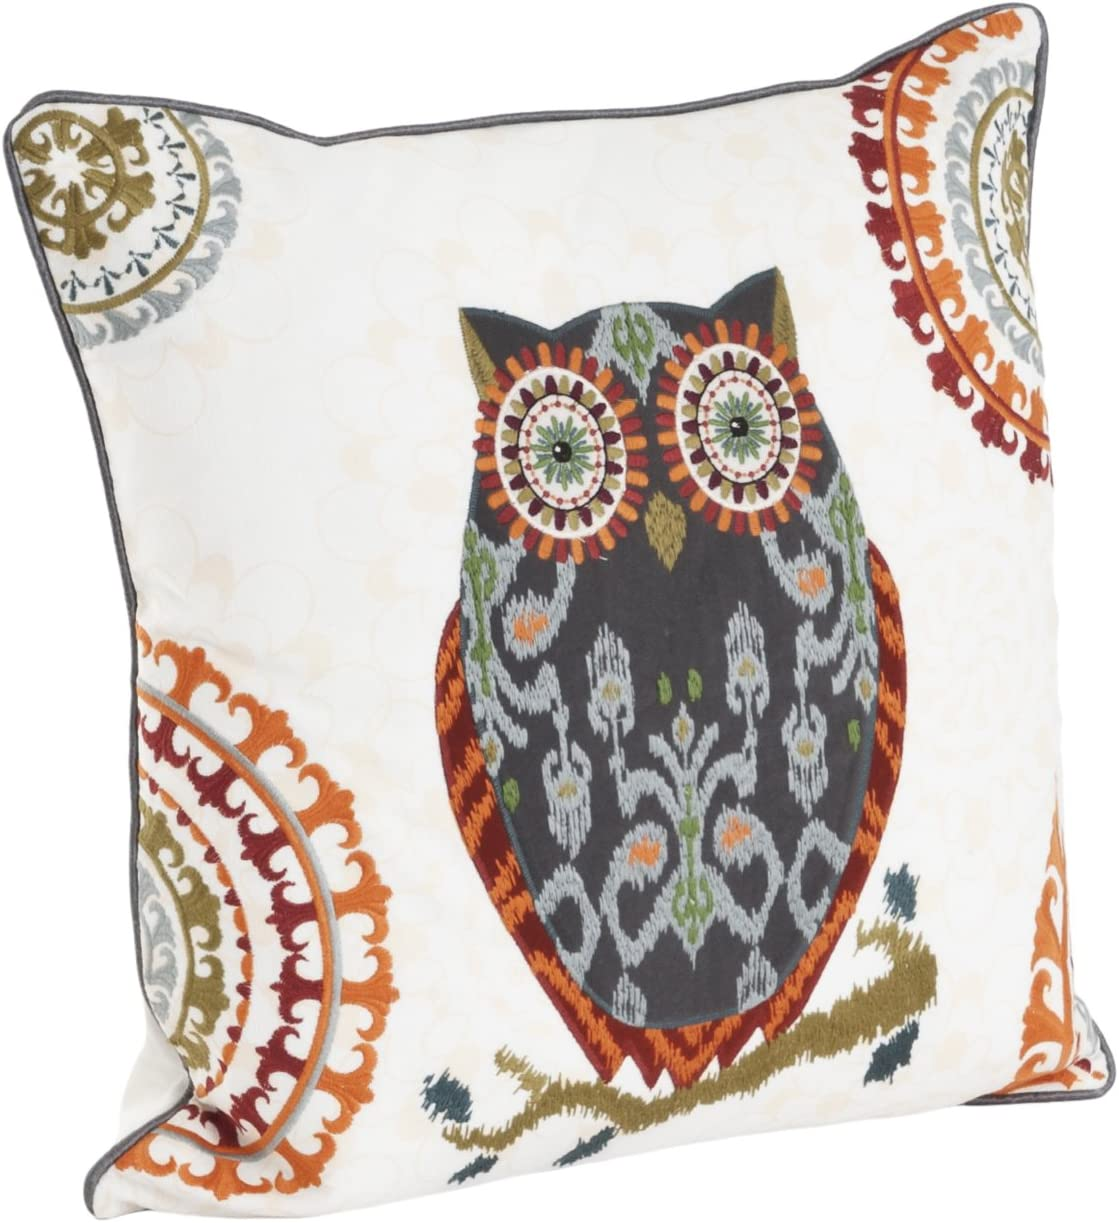 SARO LIFESTYLE 1484 Printed and Embroidered Owl Design Cotton Down Filled Throw Pillow, Grey